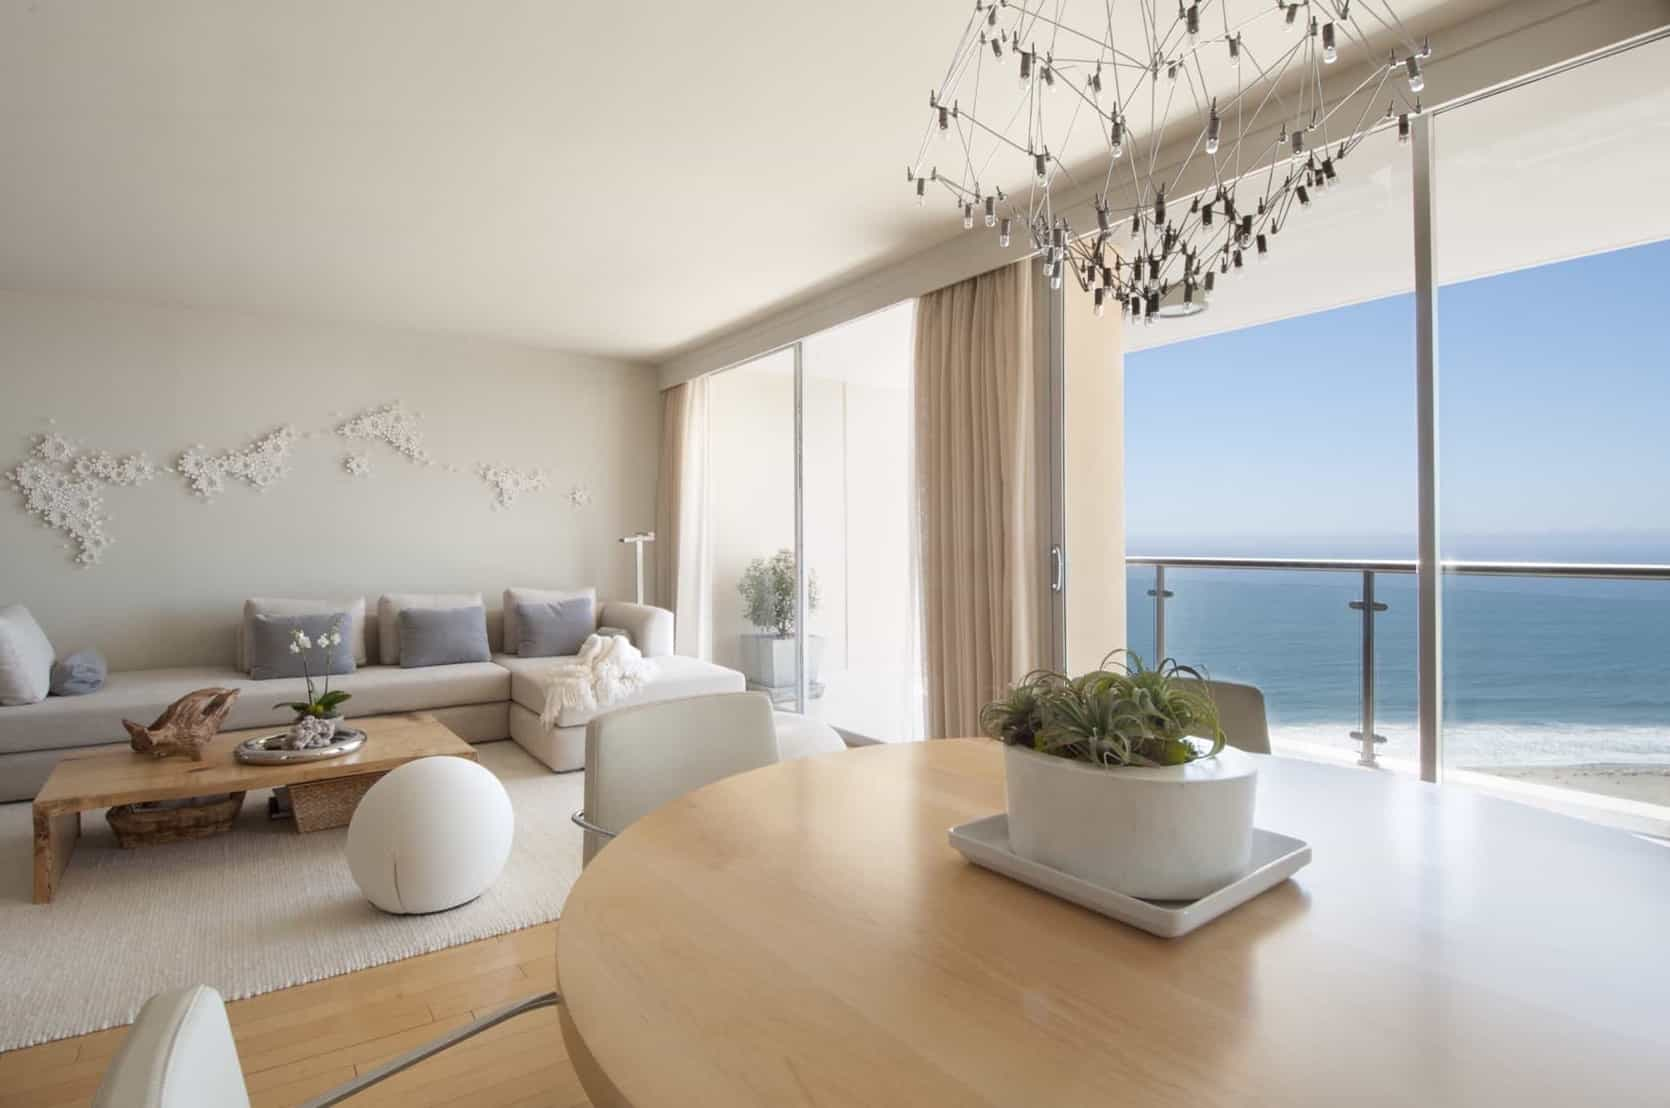 Featured Image of Light Filled Coastal Living Room By The Sea